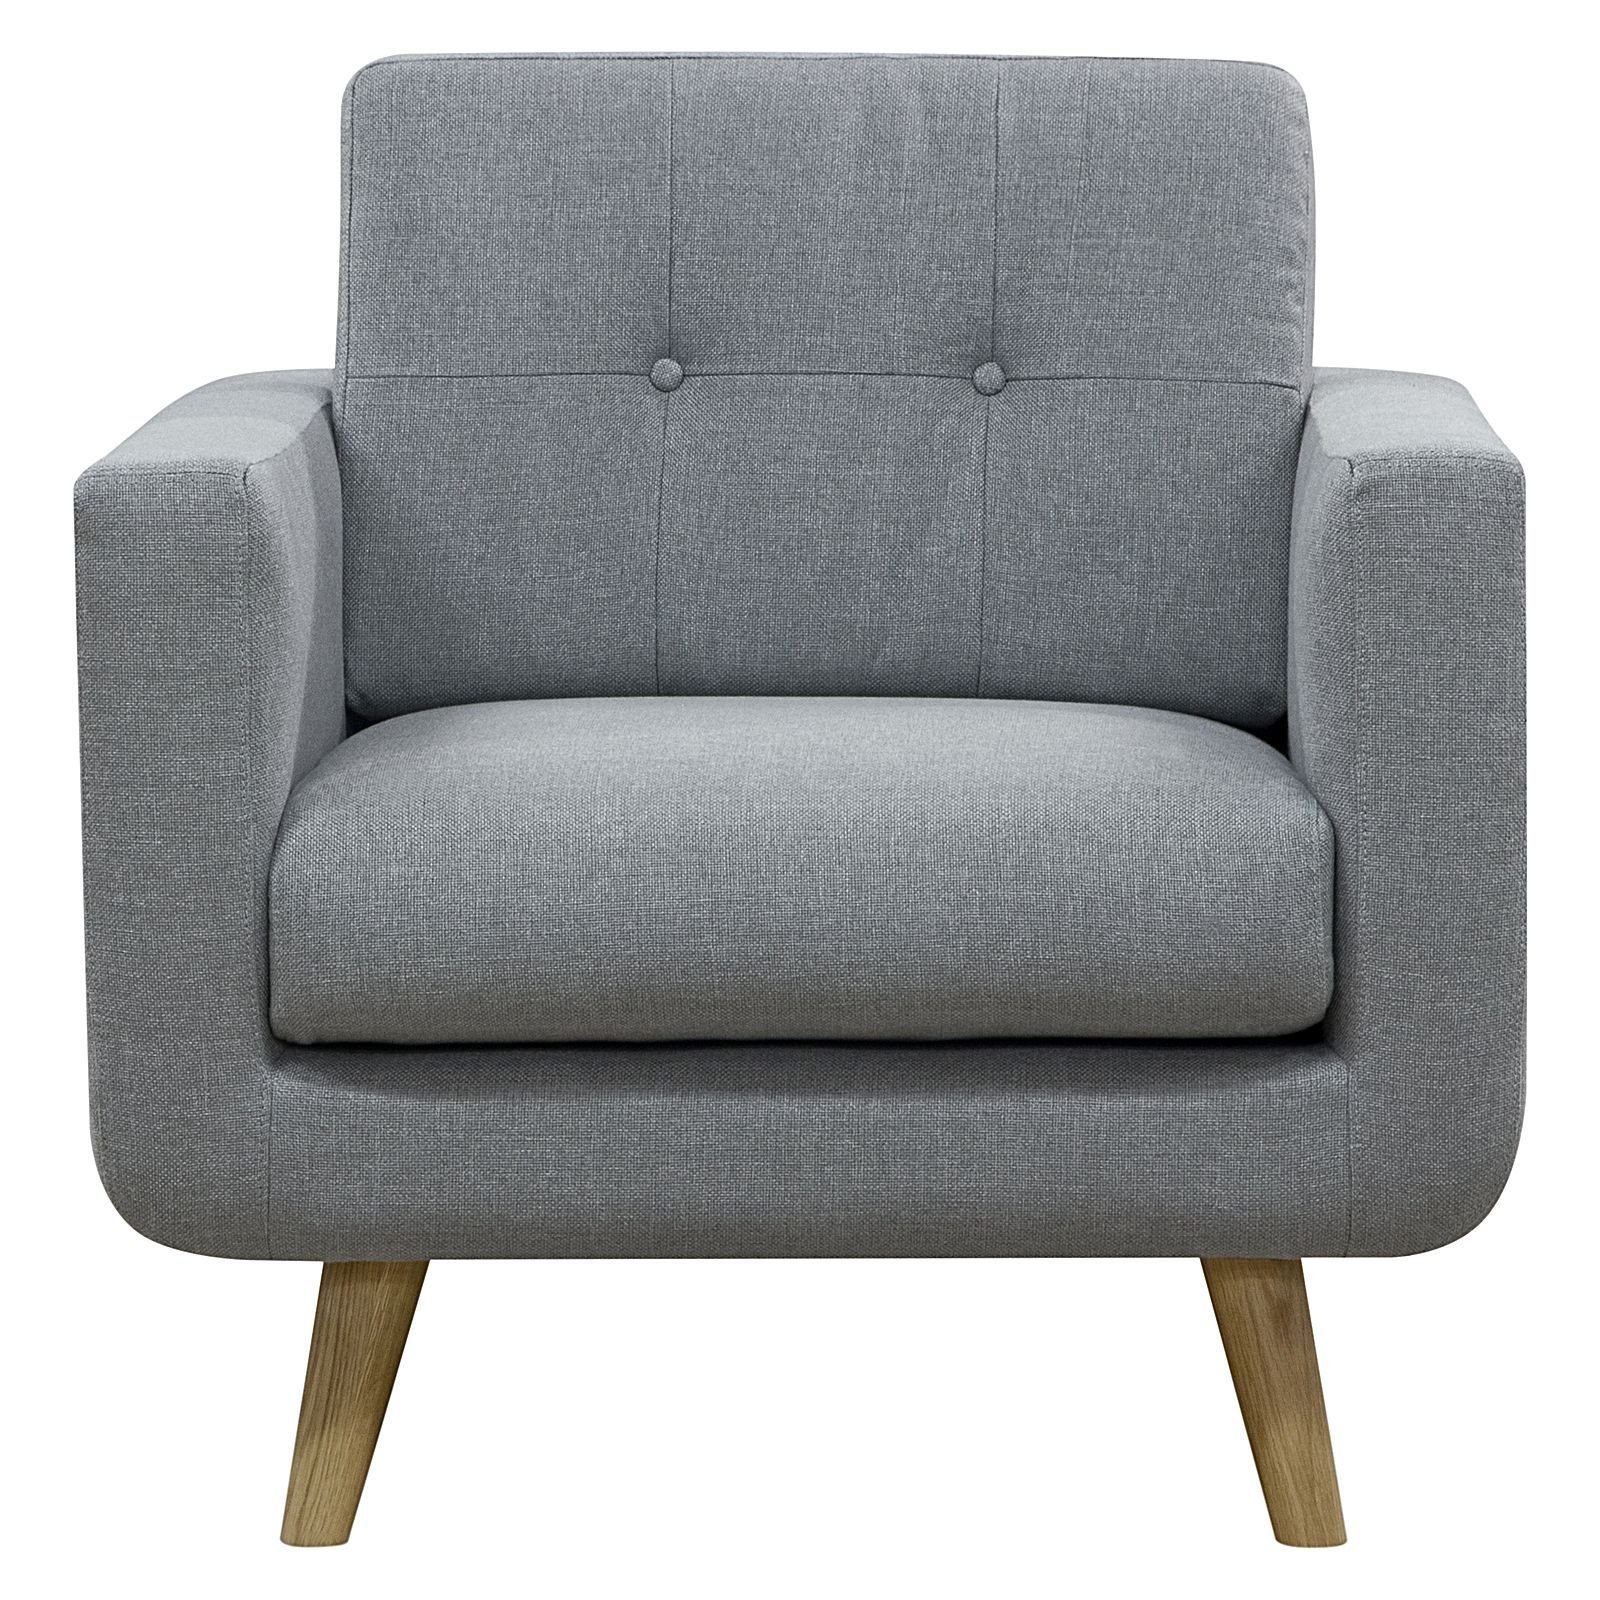 Light grey armchair - Larsen Light Grey Armchair By Zanui Zanui